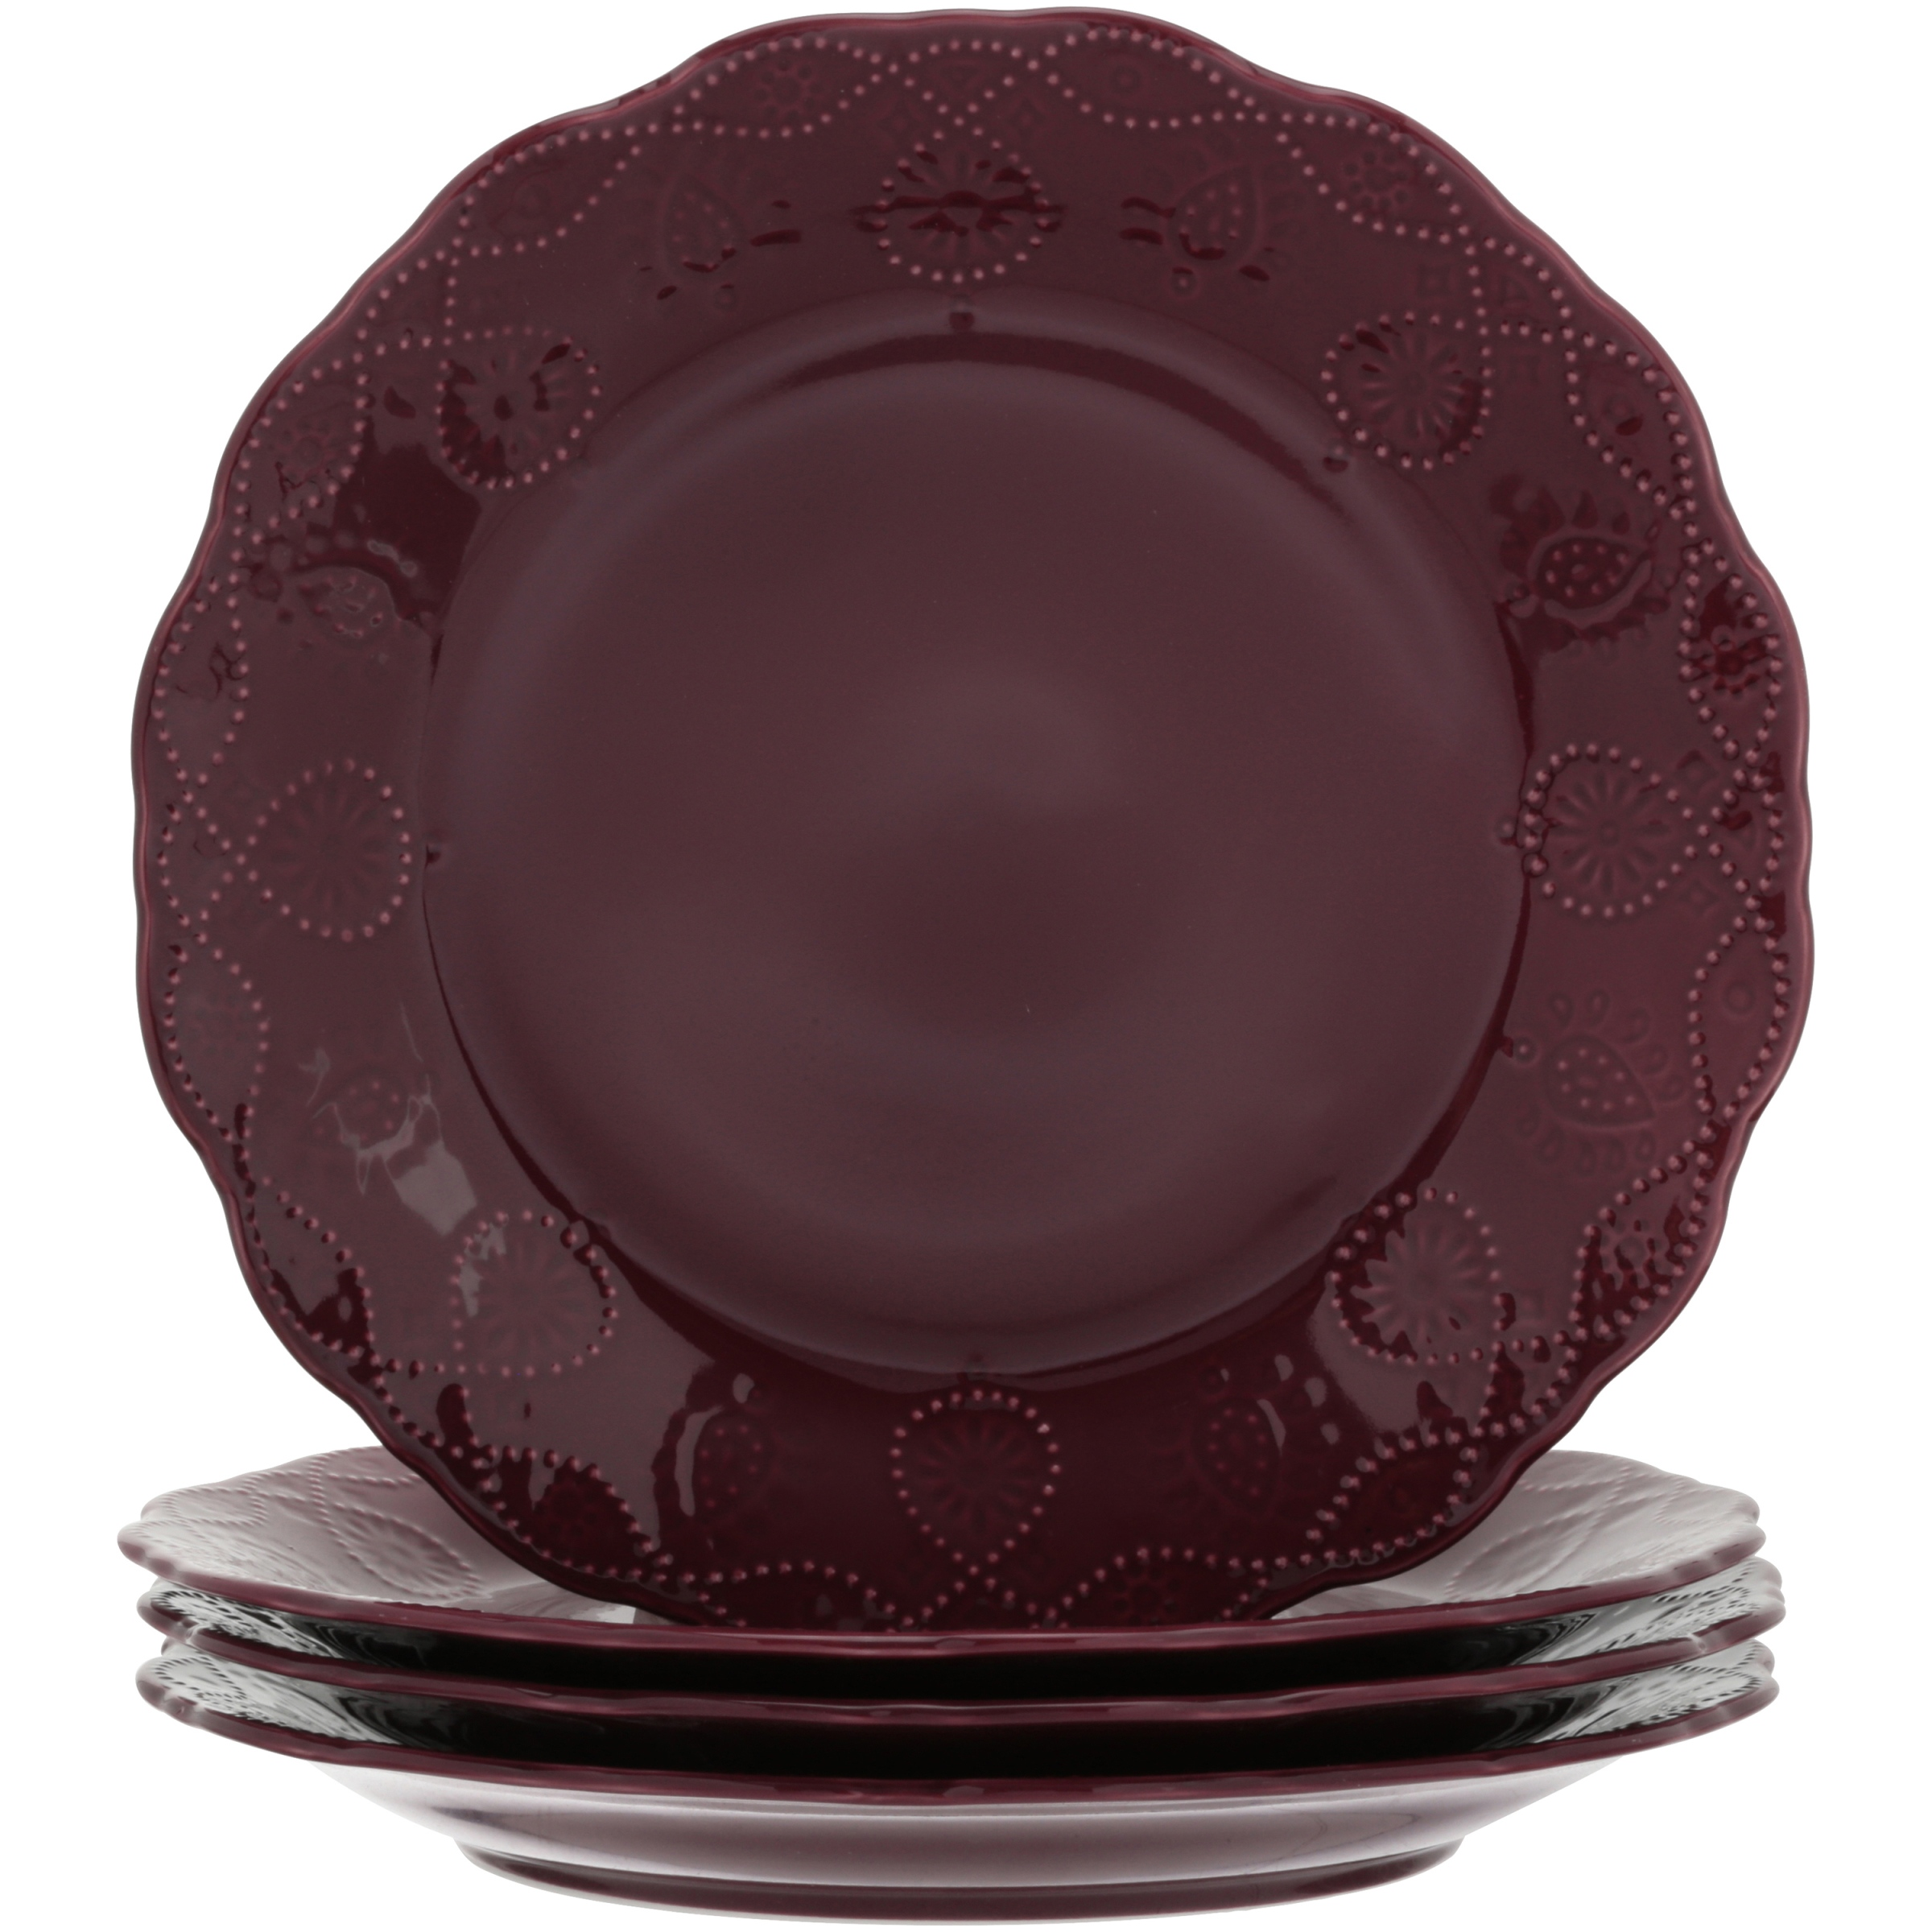 The Pioneer Woman Cowgirl Lace Transparent Glaze 4-Pack Dinner Plates